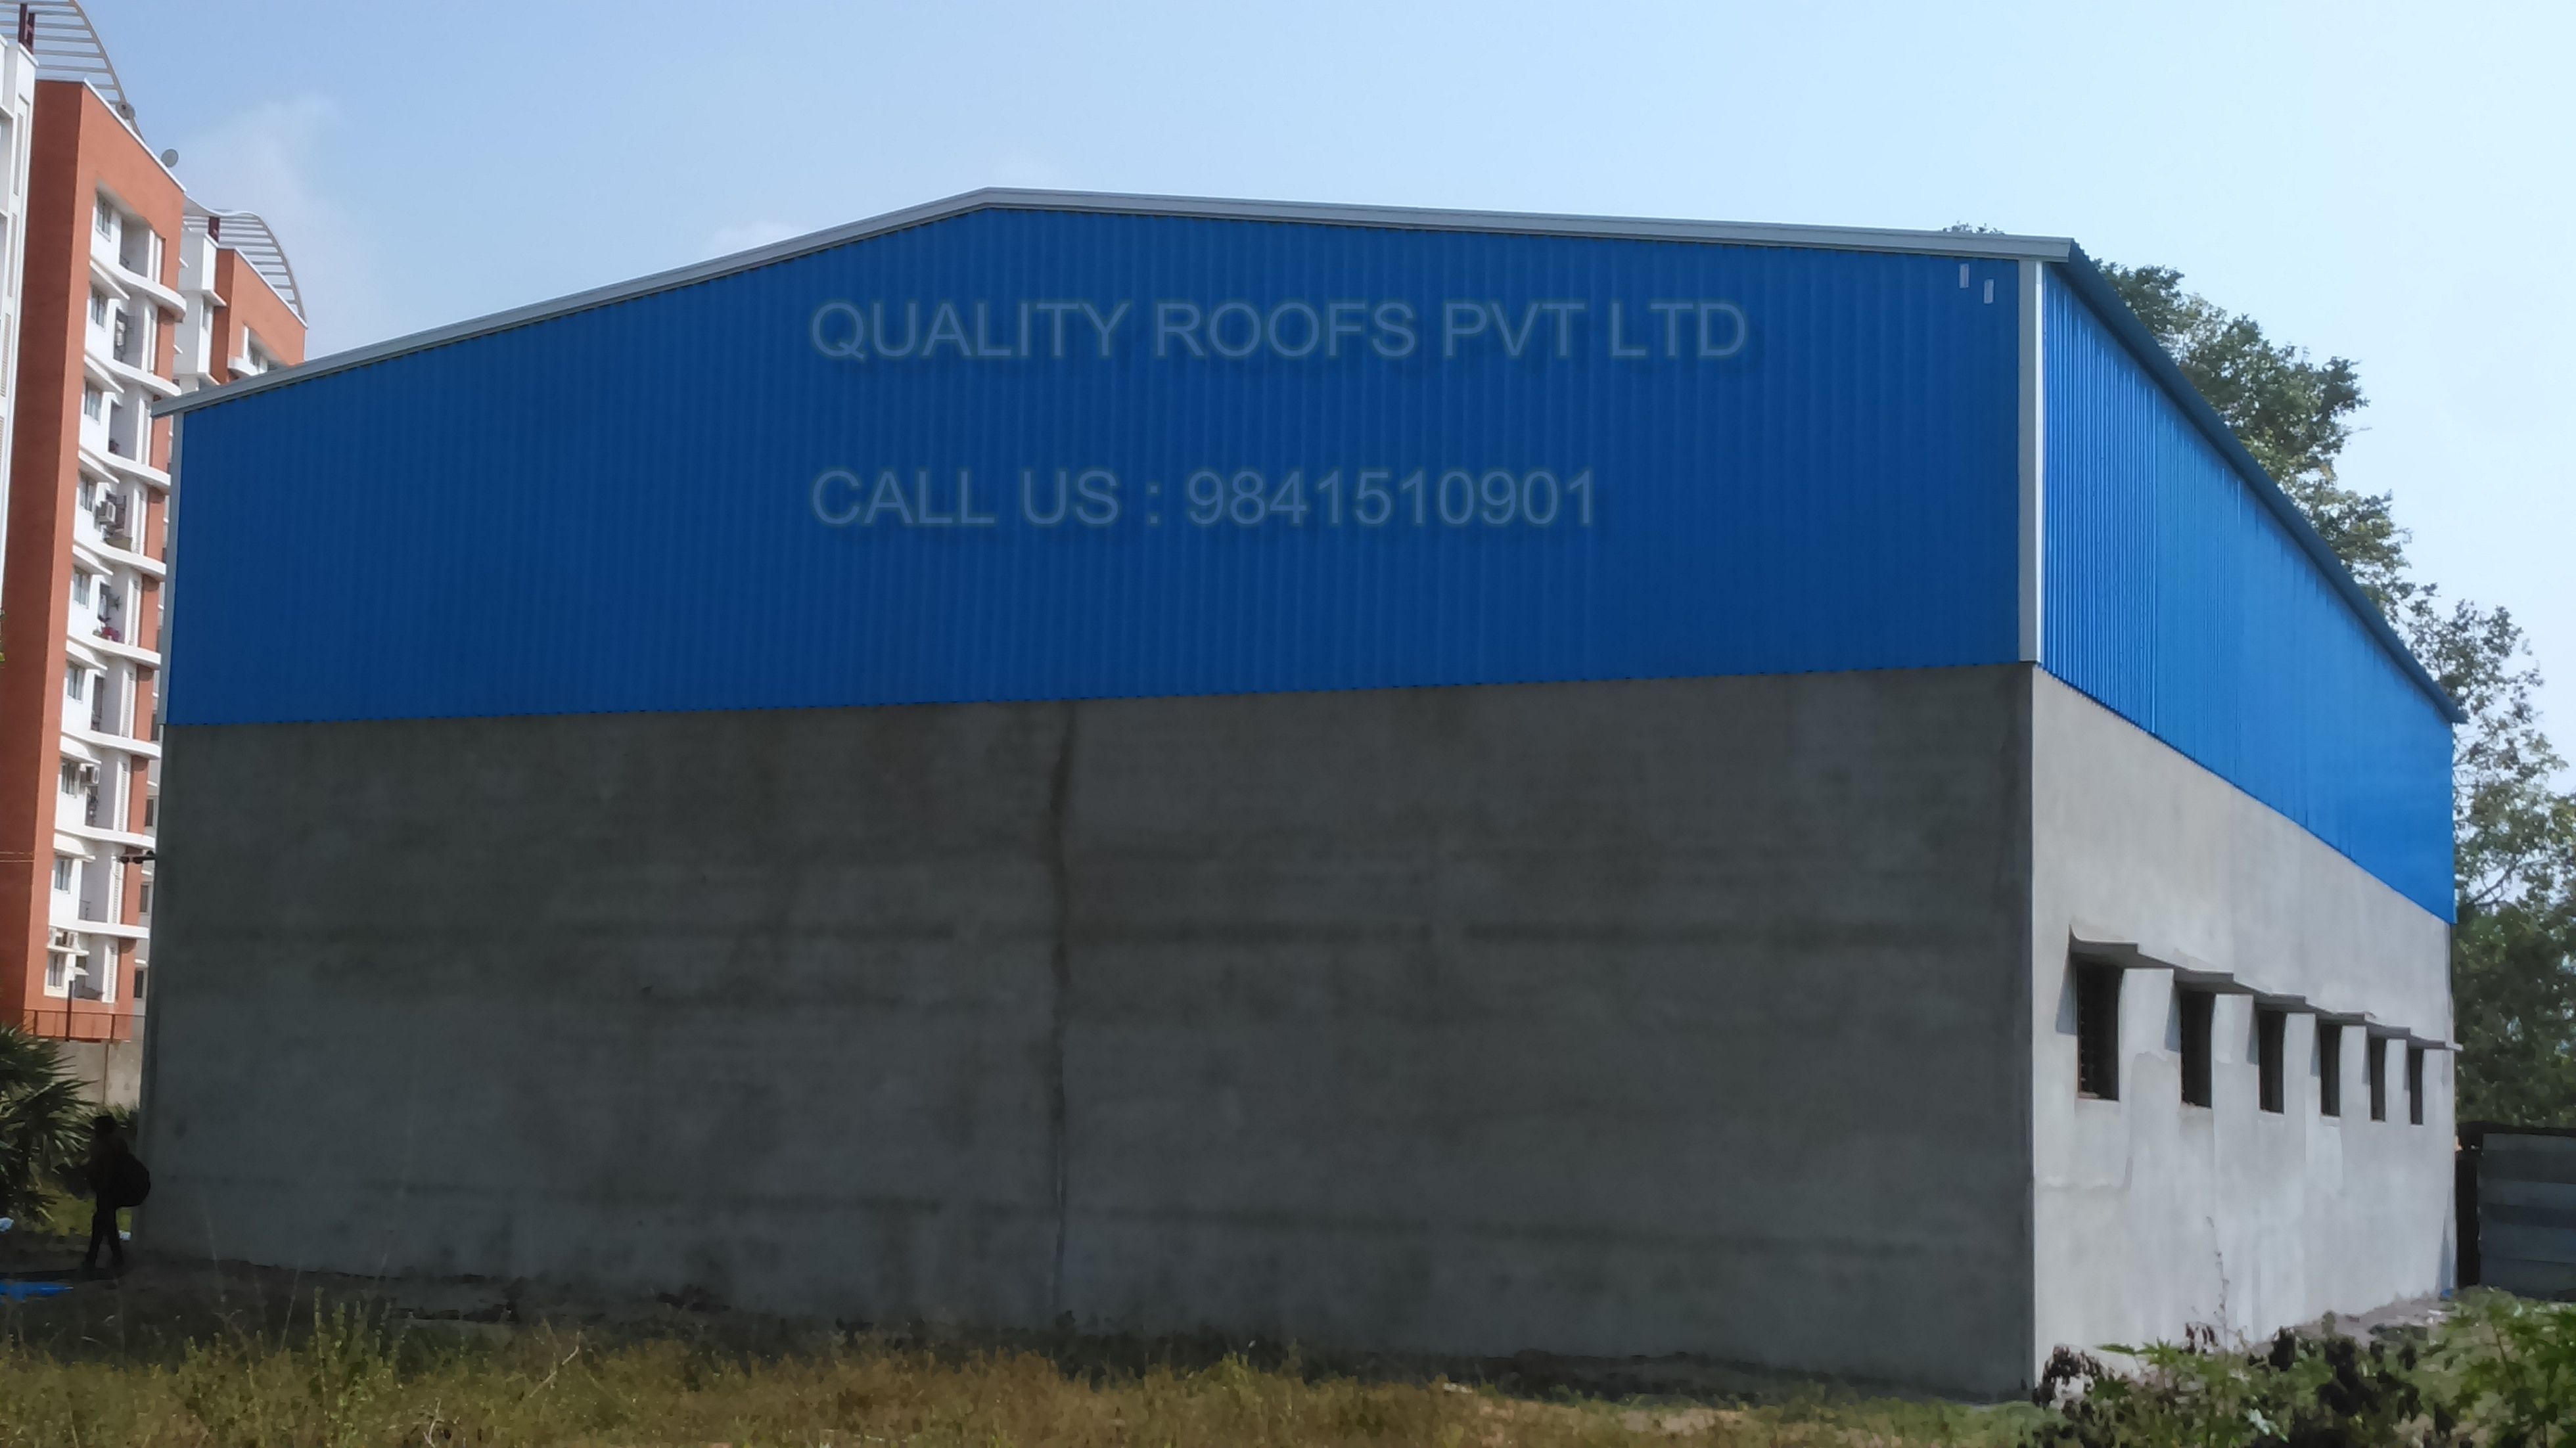 Roofing Sheets In Chennai        We are the best Manufacturing for Roofing Sheets In Chennai. We can offer these sheets to clients in varying models and sizes. These sheets can be easily installed to any conventional sheet fixing. Being manufactured using superior quality raw material and dexterous workers in tandem with set international norms, it is widely admired for its fine finish and excellent quality.  we are the leading Roofing Solution In Chennai. we are also undertaking the Roofing Services In Chennai at very lowest price.